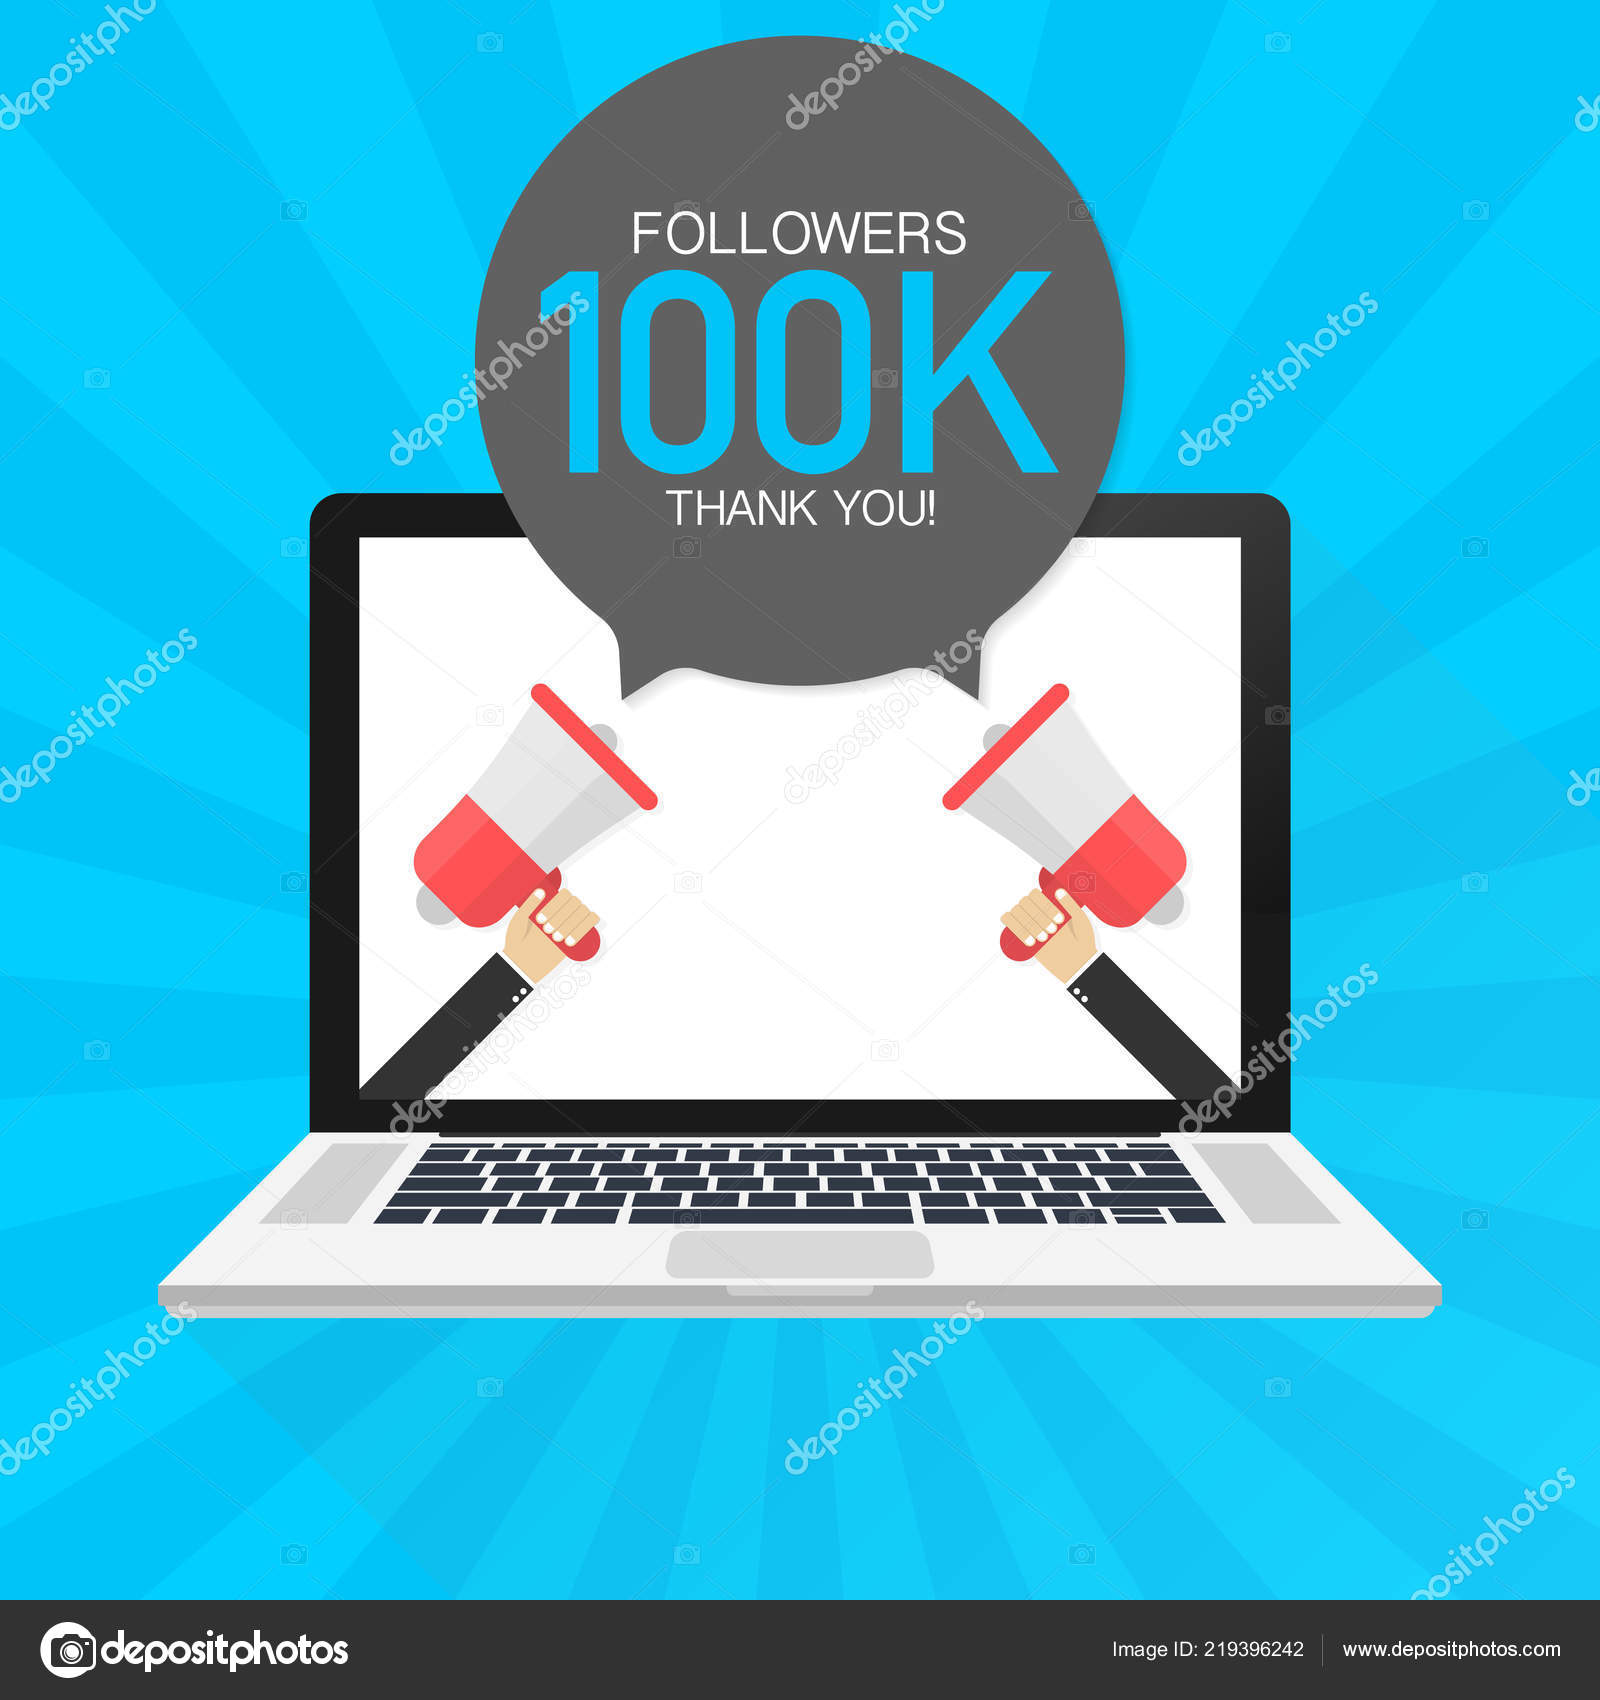 100000 followers thank you card with laptop template for social